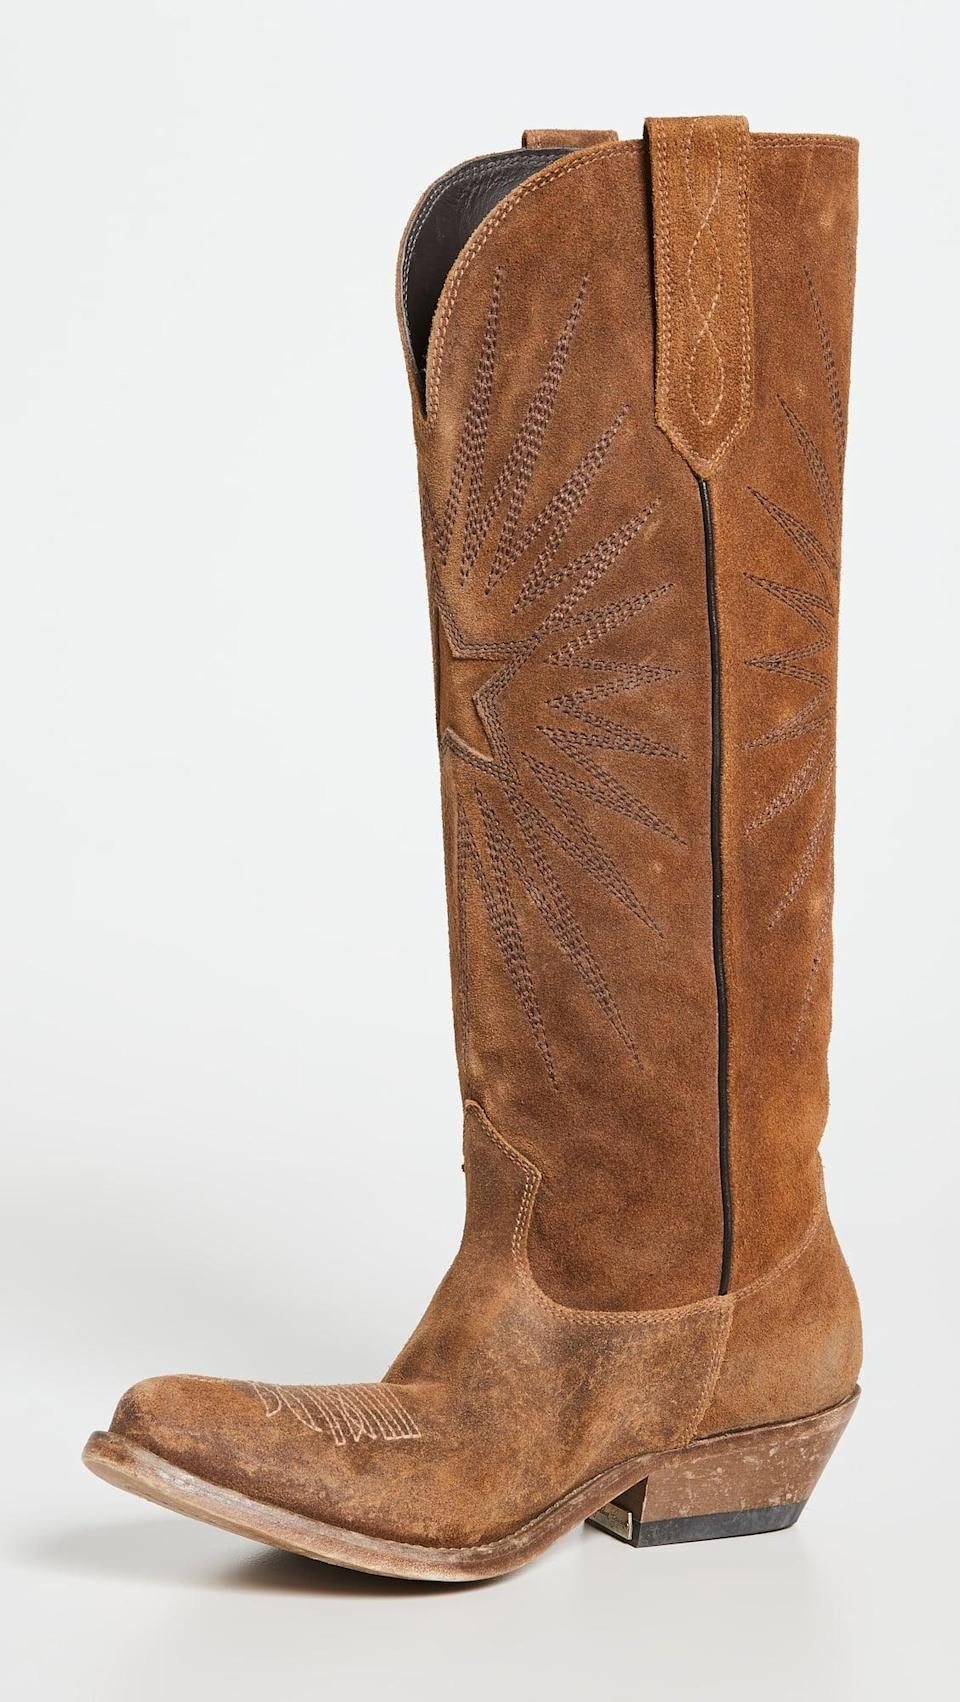 <p>These <span>Golden Goose Wish Star Boots</span> ($890) look authentic and cool. We're dreaming of wearing them with a long dress or tucked into pants.</p>